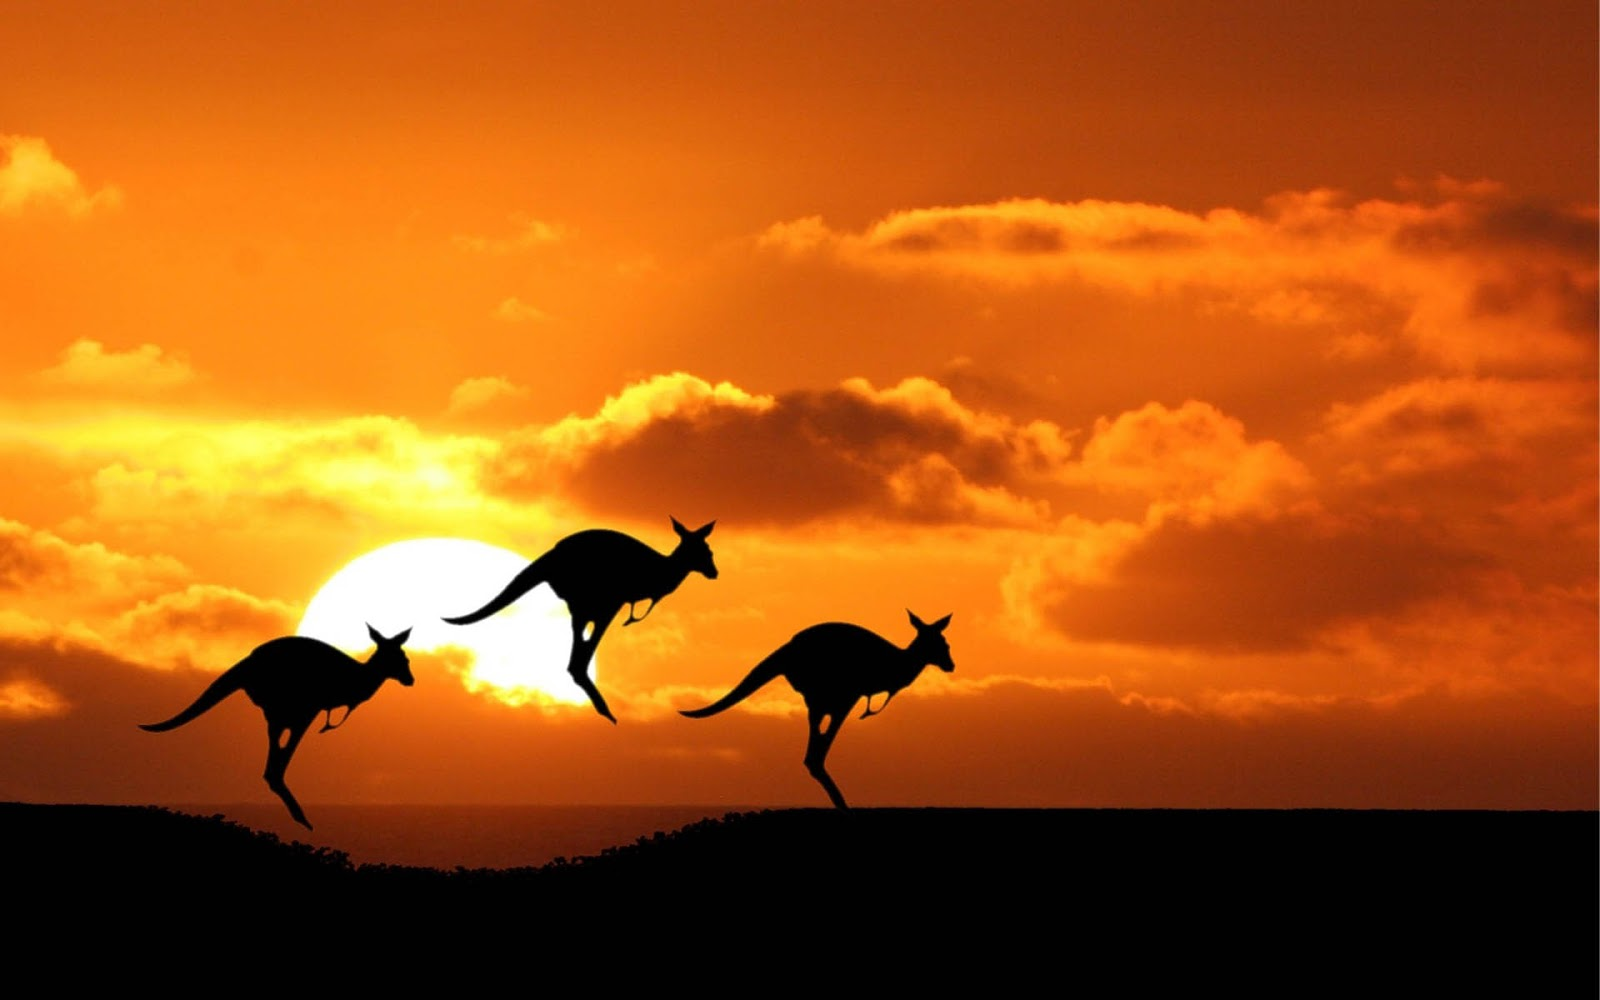 Australian Computer Wallpapers, Desktop Backgrounds